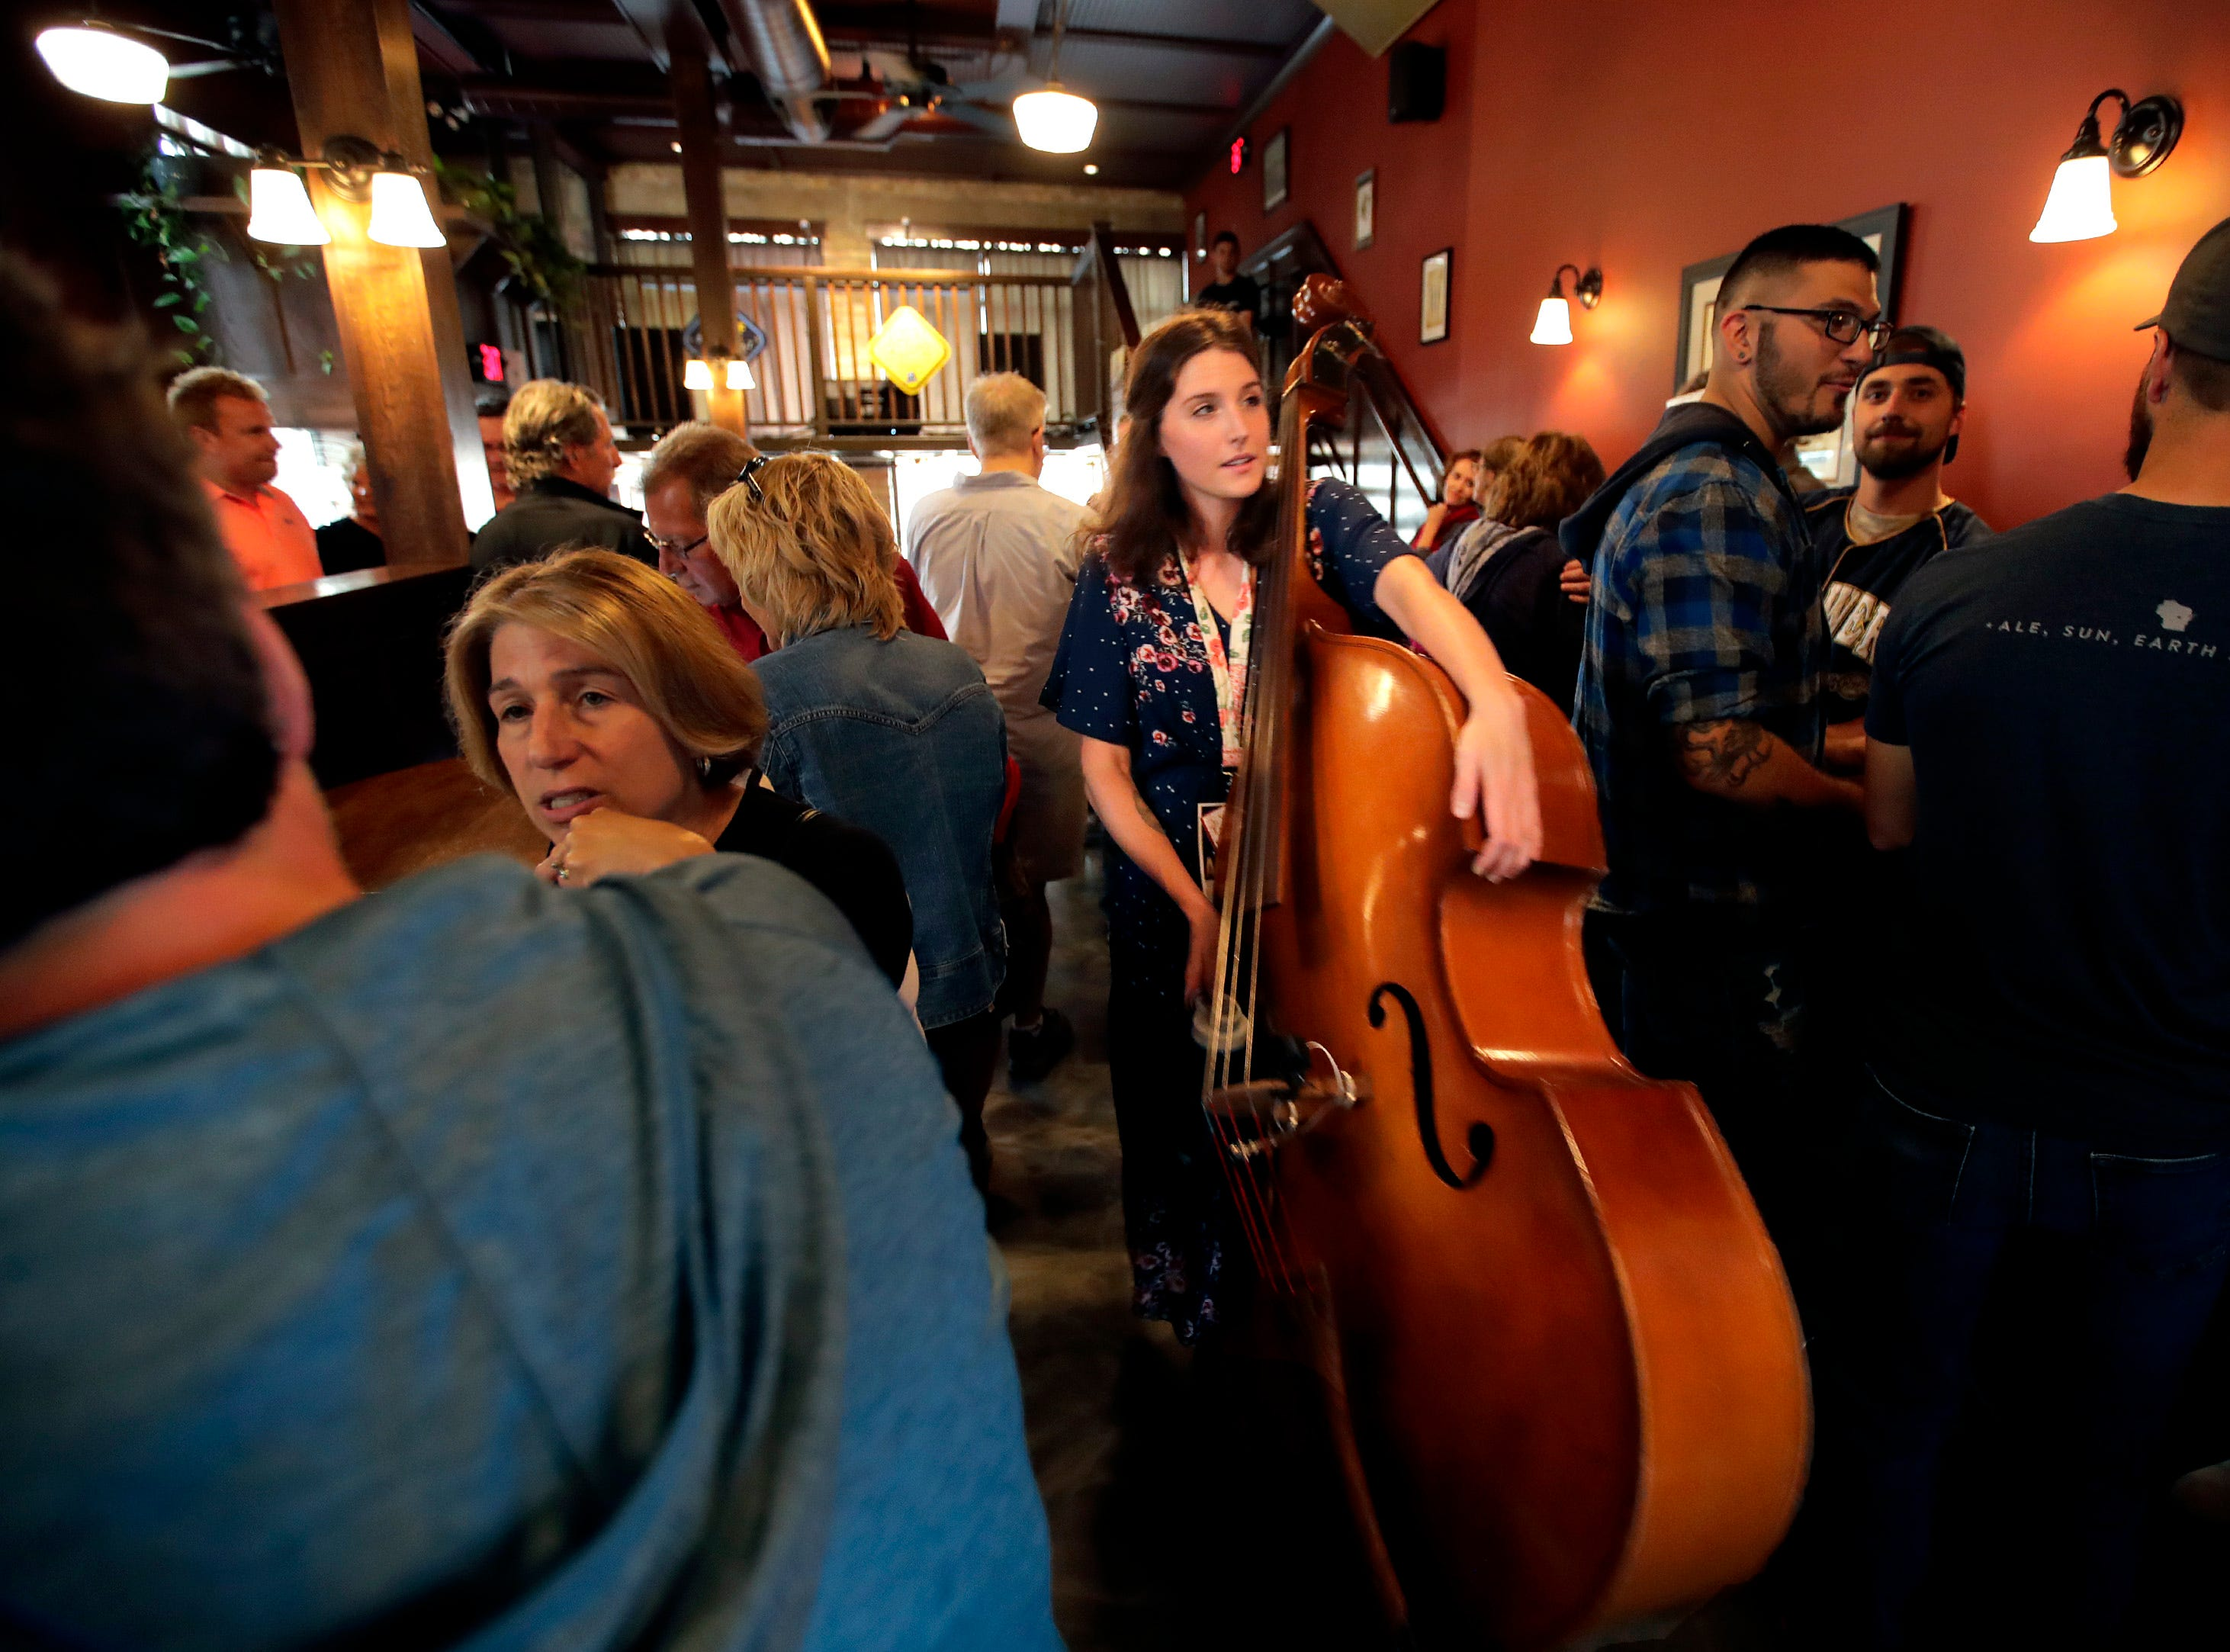 Molly Mathewson, with Last Acre, carries her double bass out of McFleshman's Brewing Co. after their set during the first day of Mile of Music Thursday, Aug. 2, 2018, in Appleton, Wis. Danny Damiani/USA TODAY NETWORK-Wisconsin